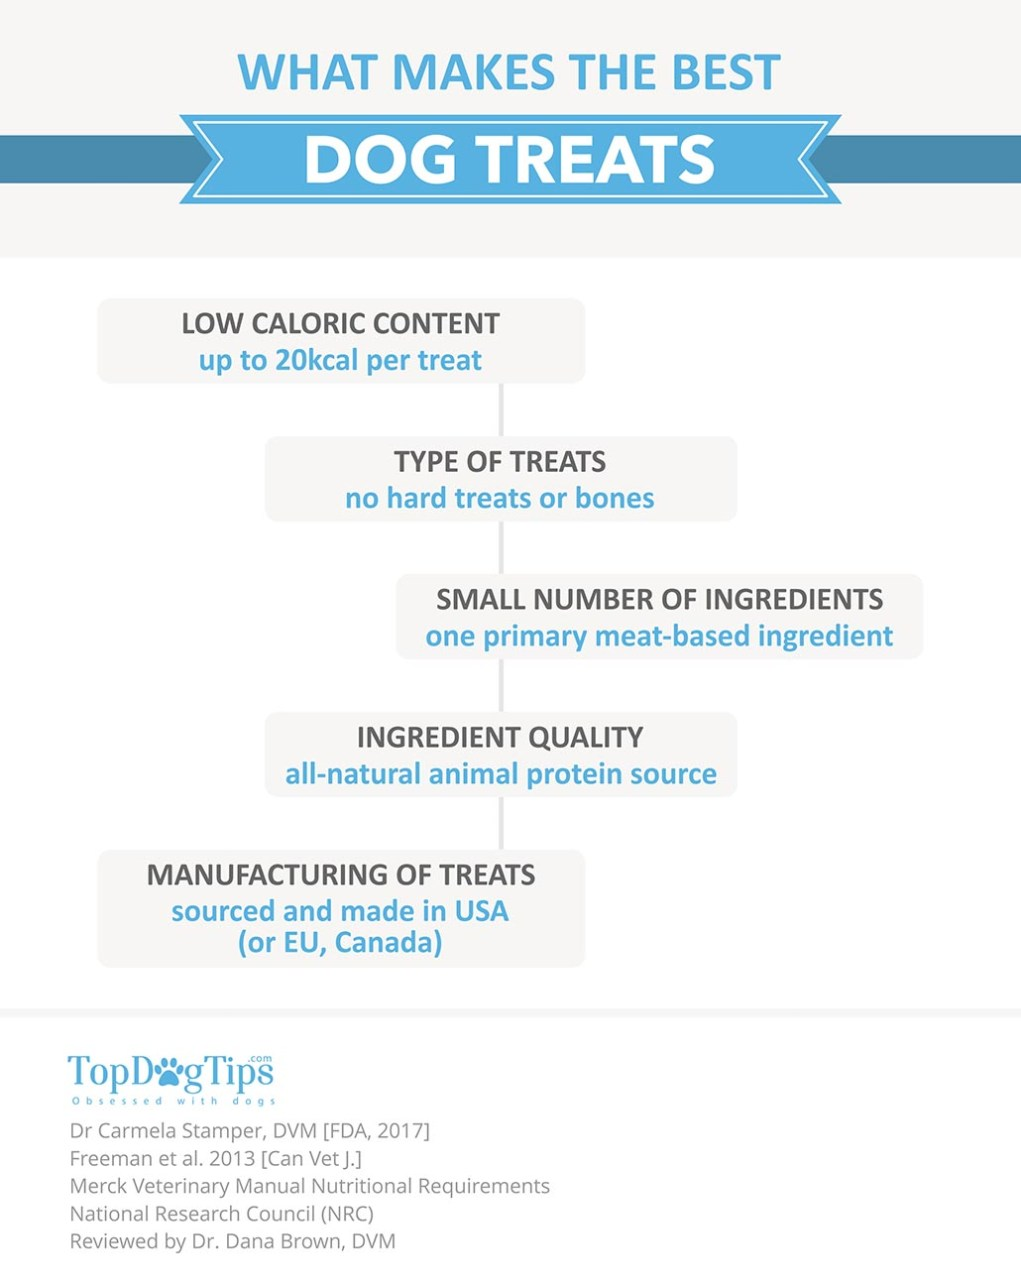 What Makes the Best Dog Treats